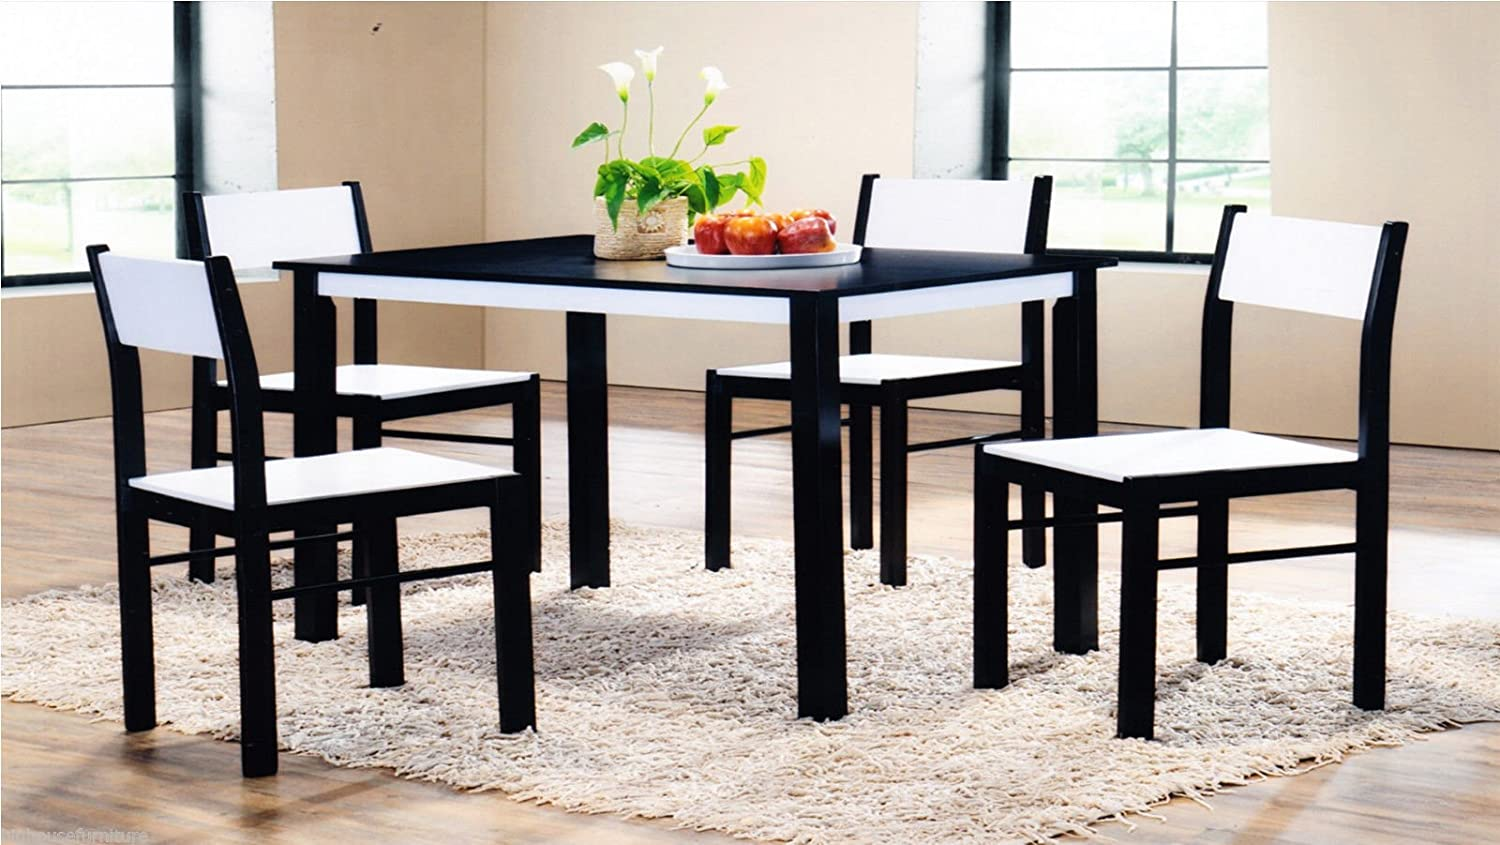 New Quality Wooden Dining Table and 4 Chairs Set Kitchen Furniture  Wenge/White